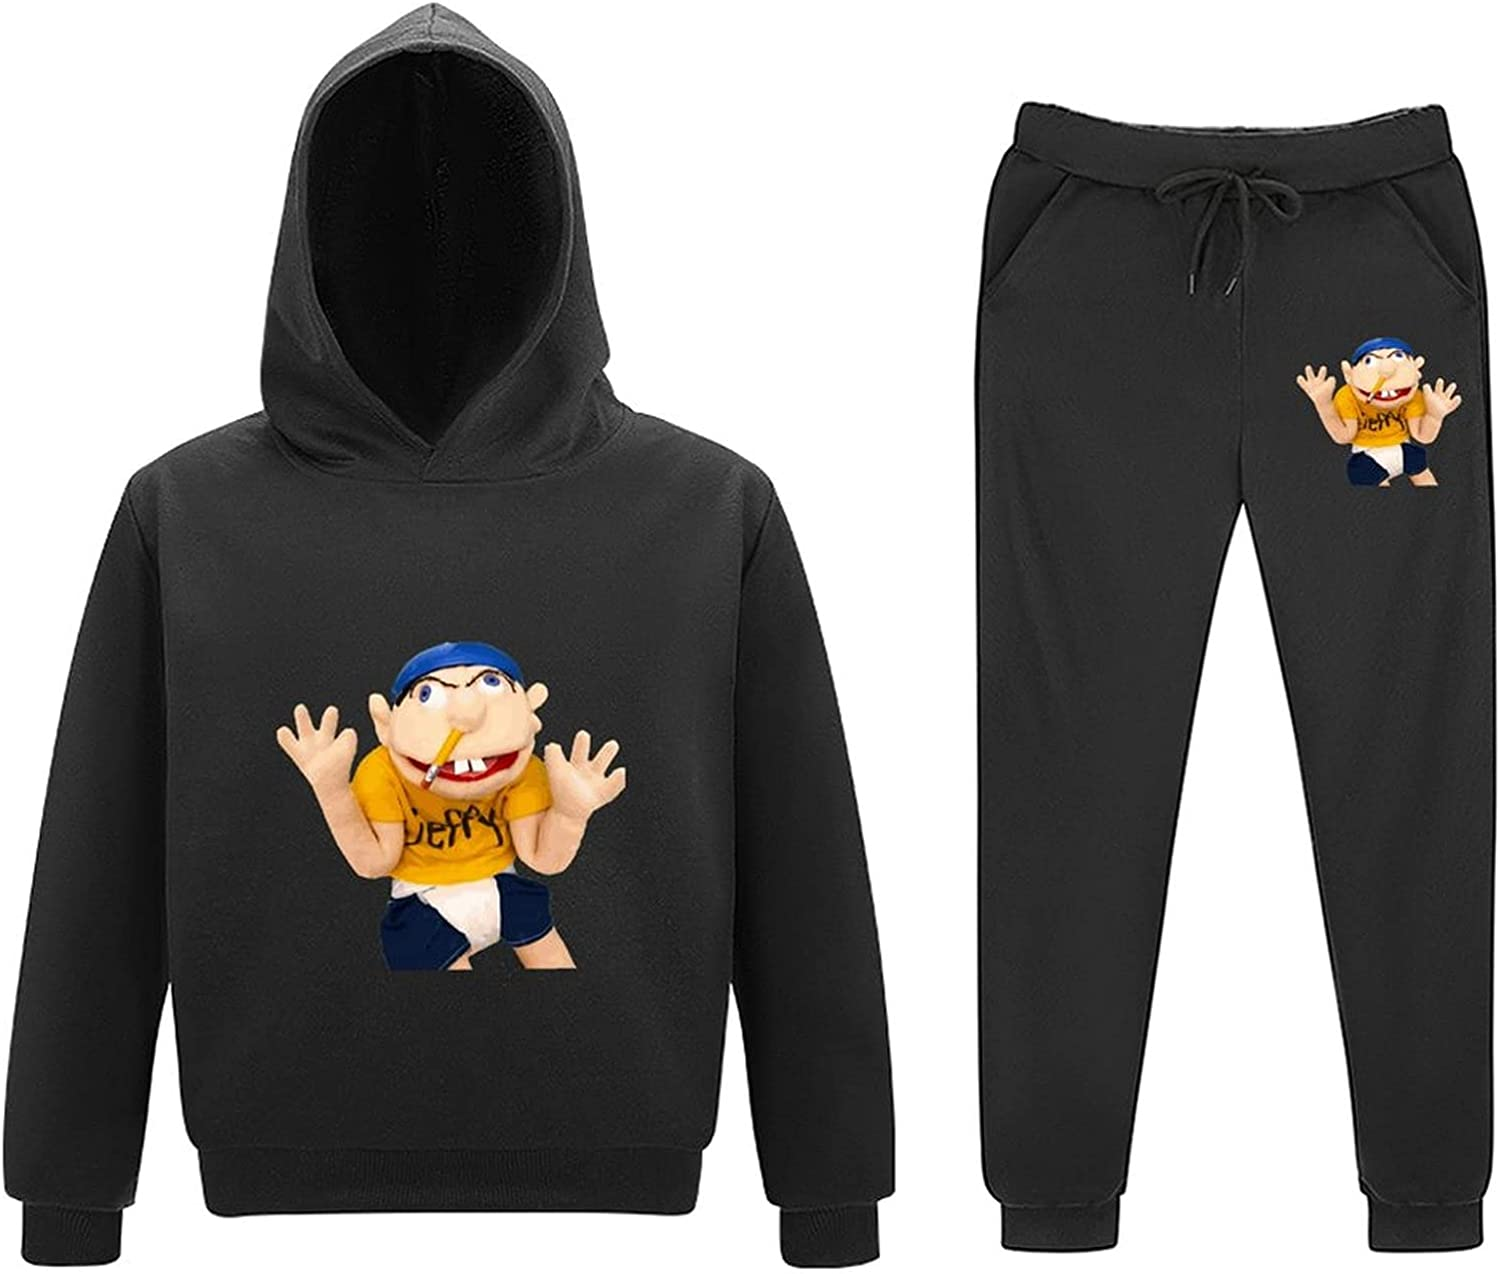 Sm-l Jef-fy Limited price sale Youth Sweater Set Max 45% OFF Sports Hooded Anime Casual Fashion